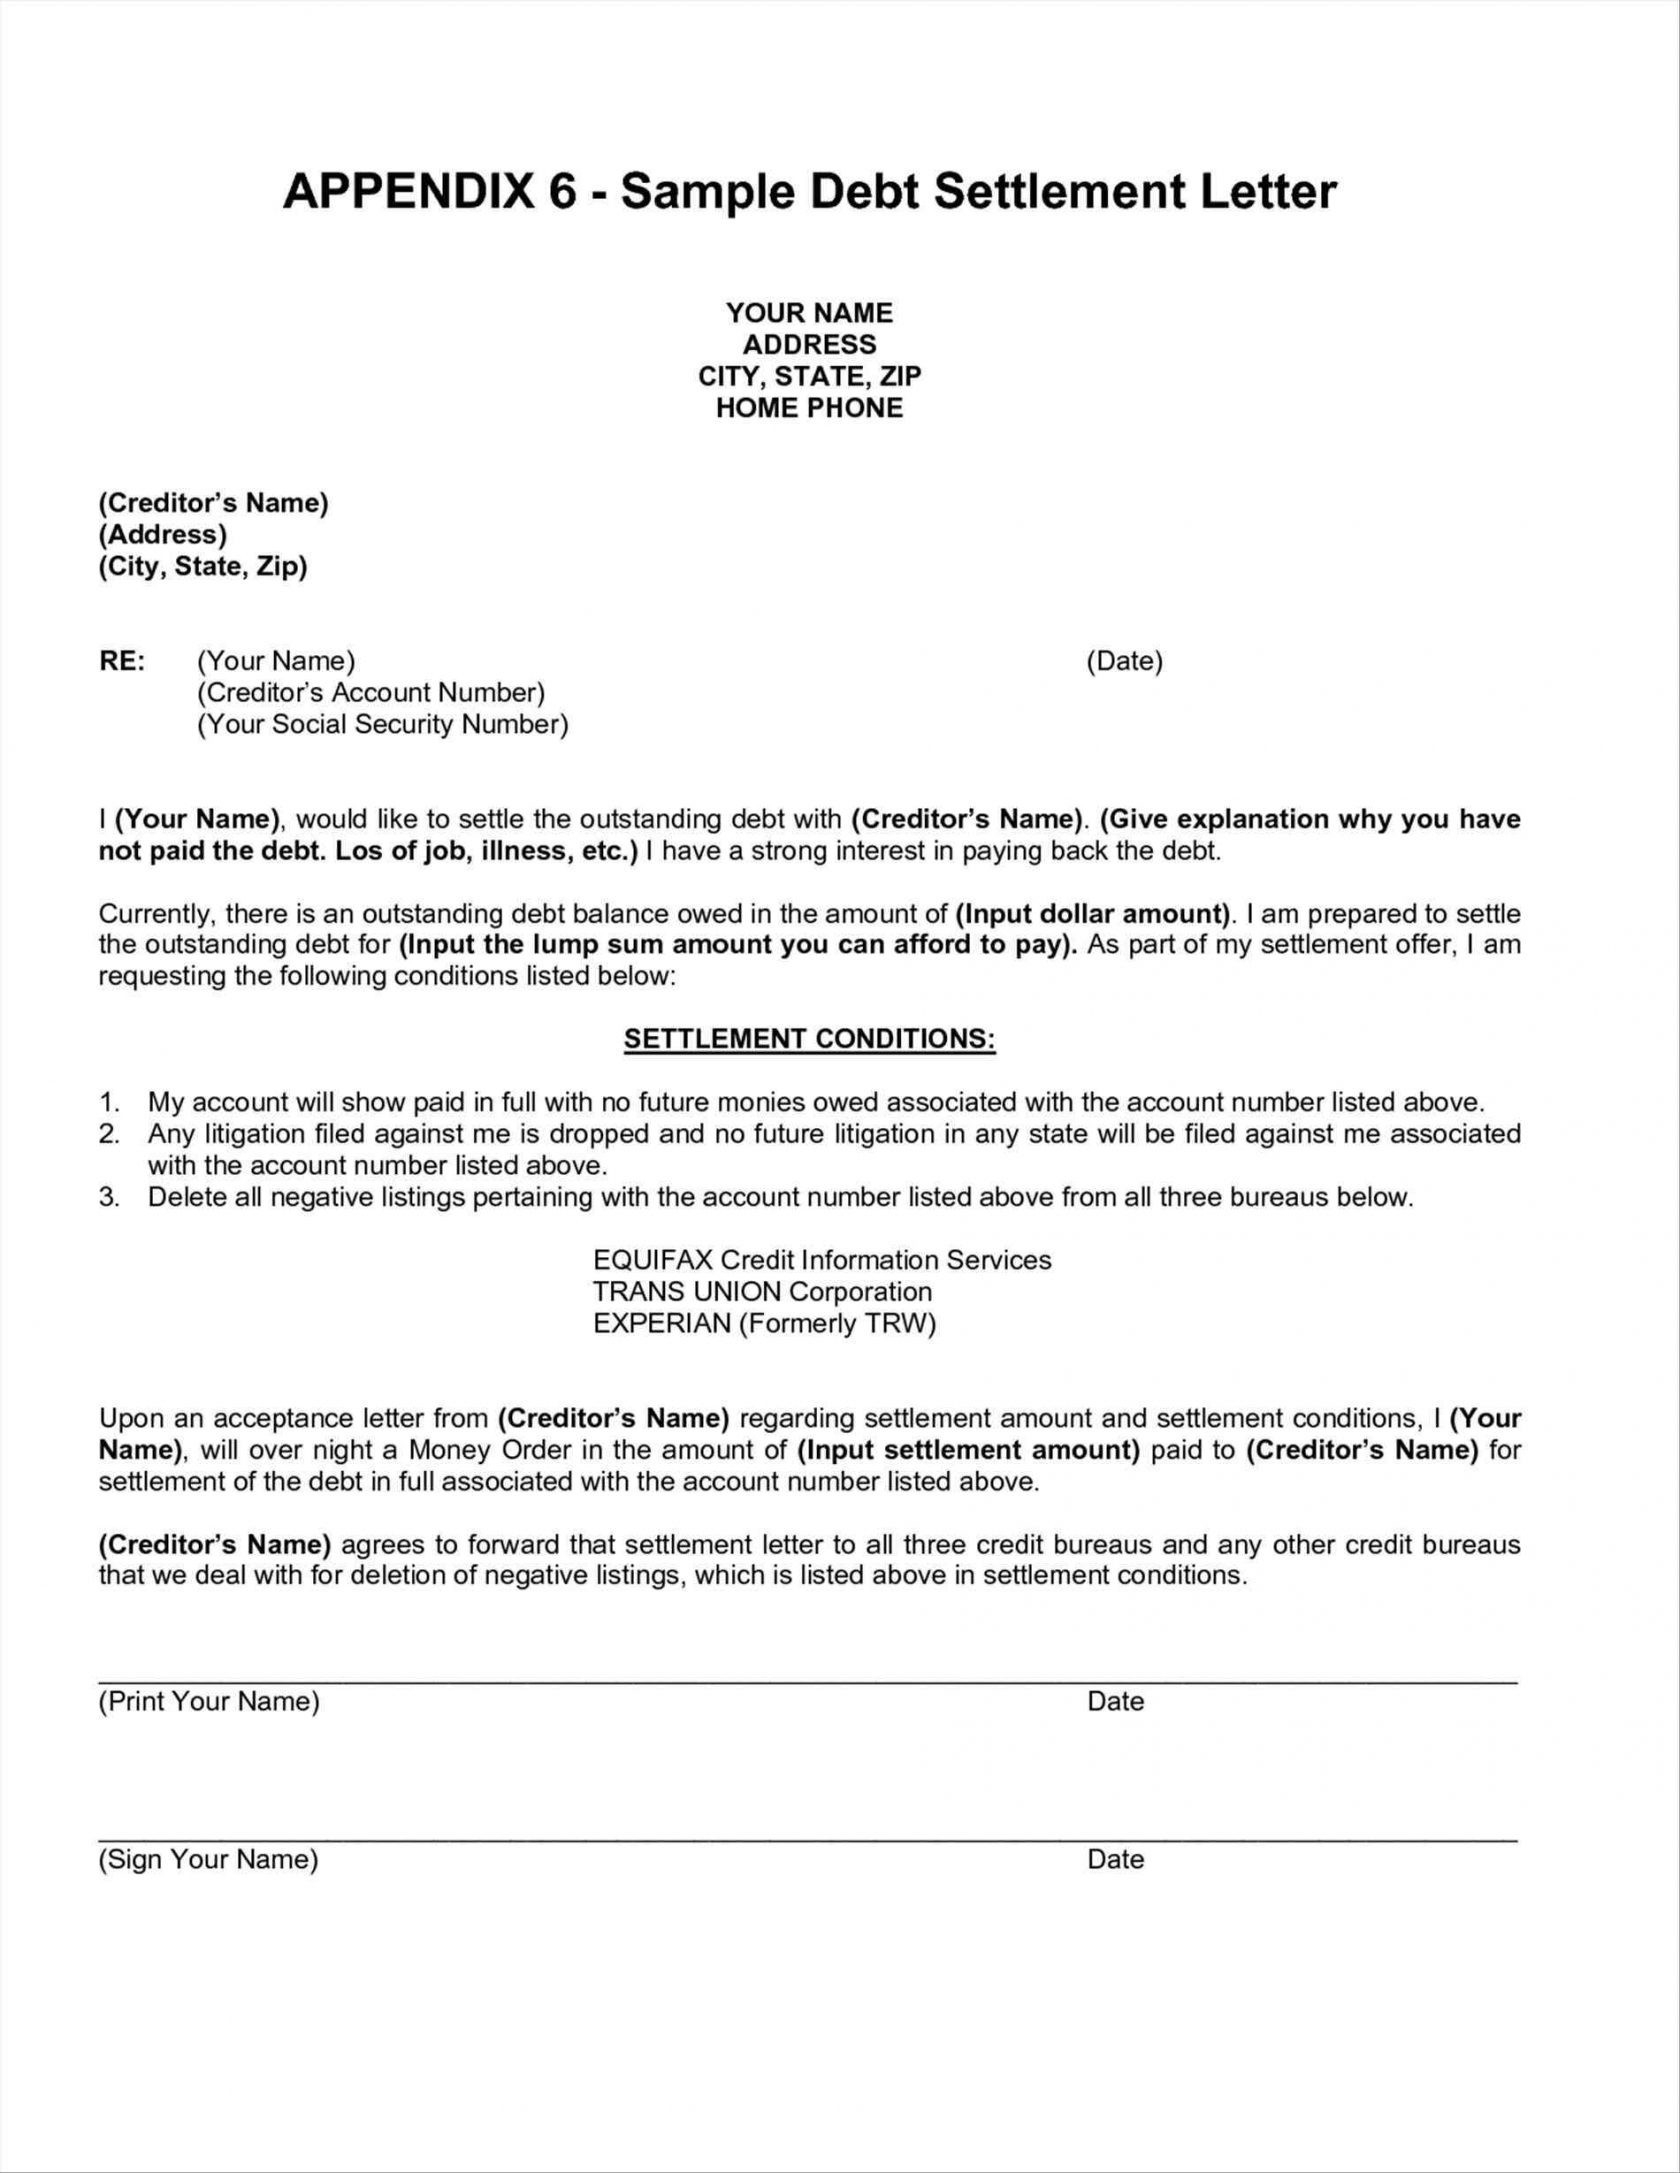 Credit Card Settlement Letter Template - Debt Negotiation Letter Template